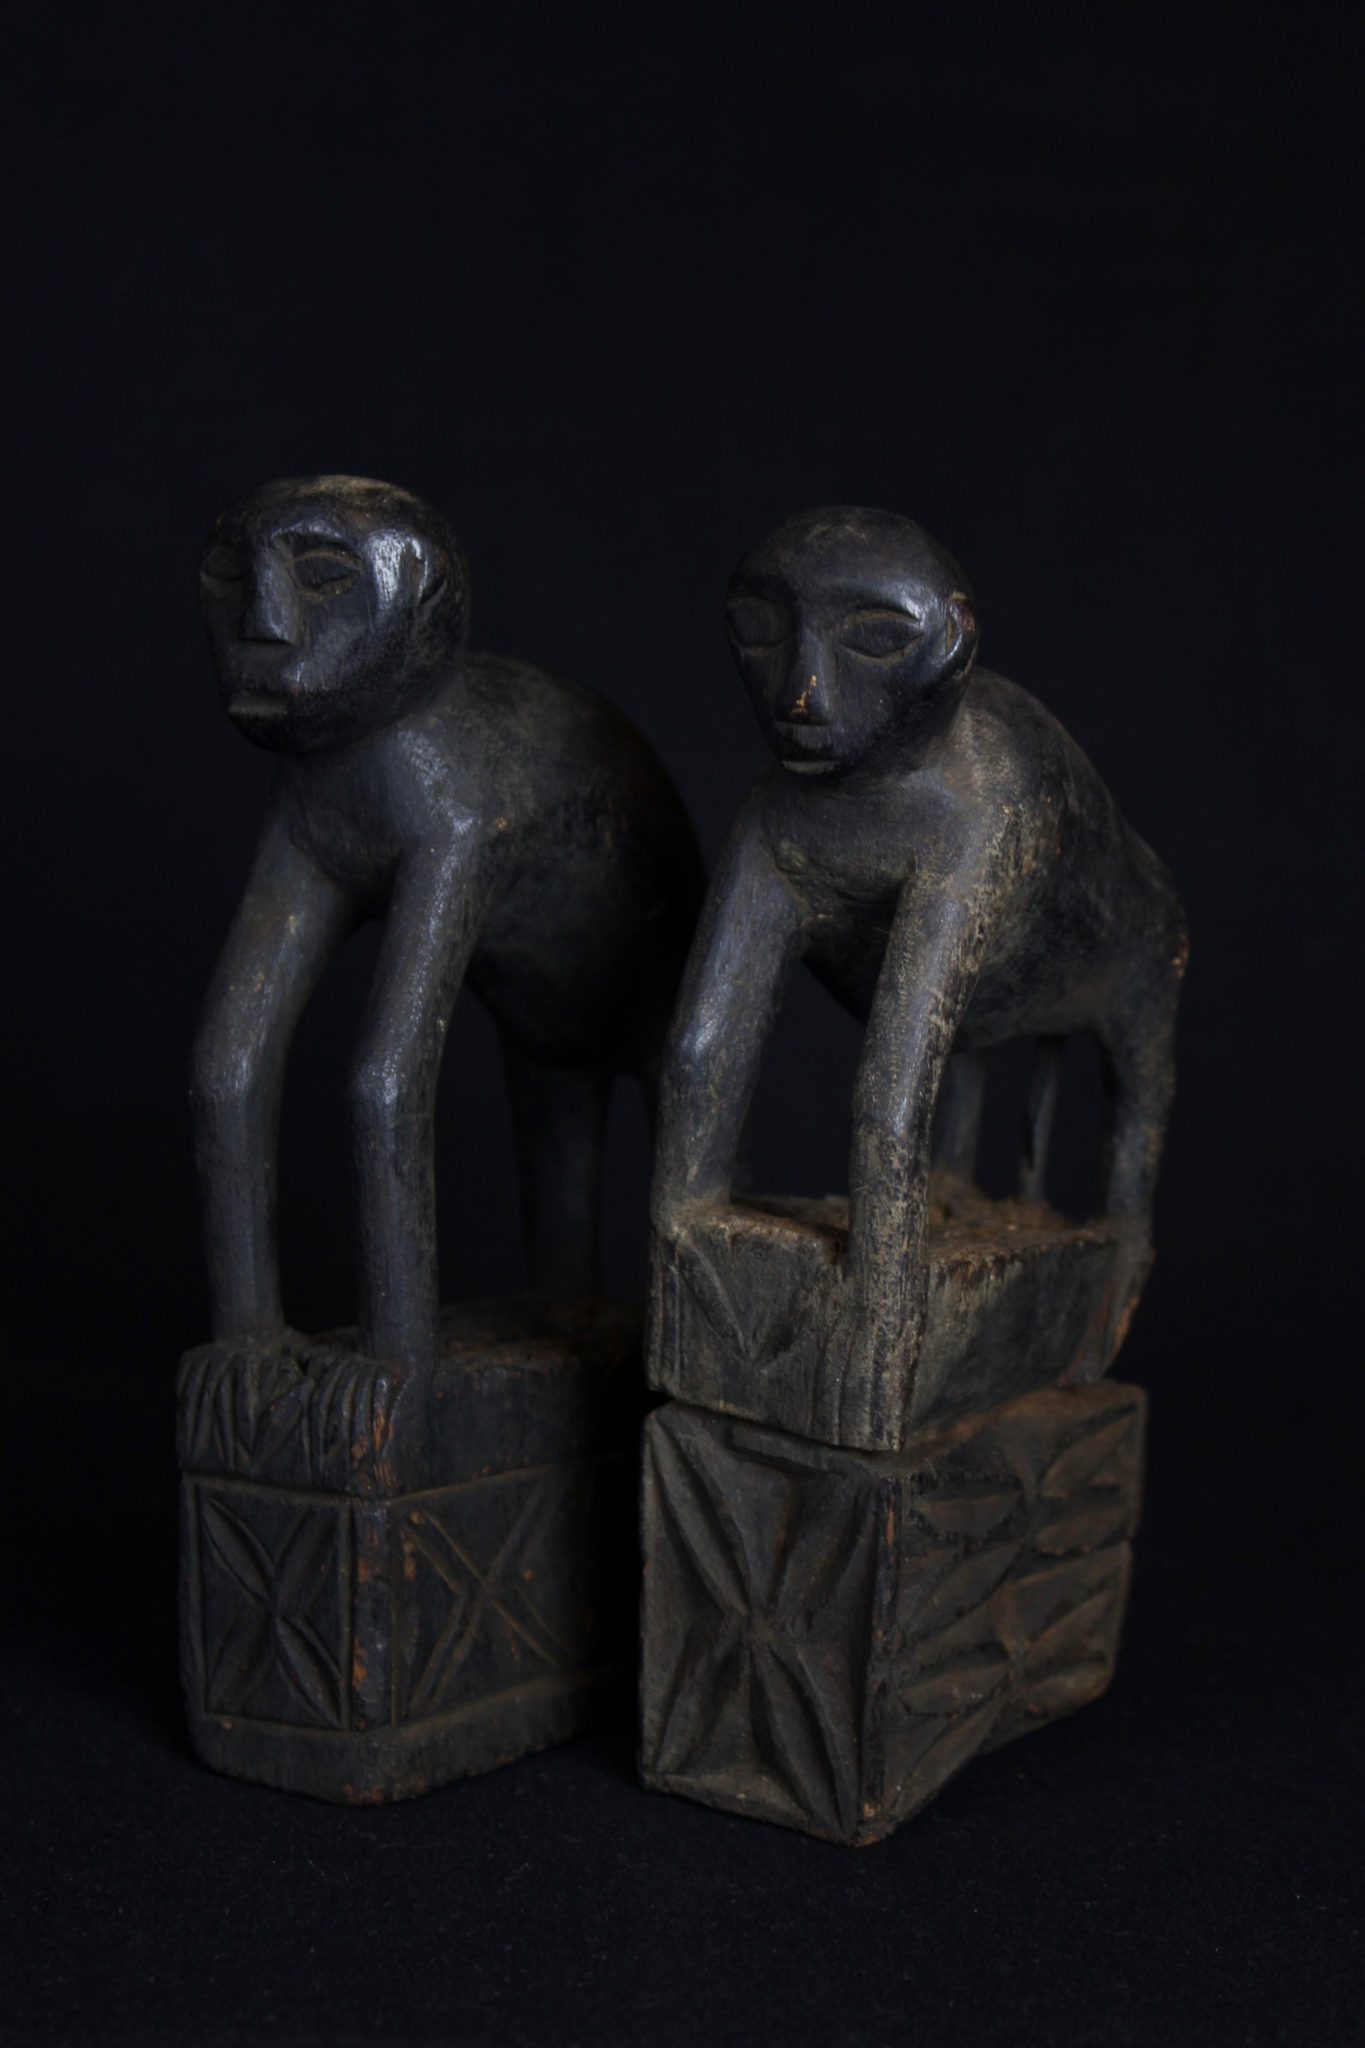 "Shaman Amulet/Talisman Figure (rare), Kalimantan, Borneo, Indonesia, Modang Dayak tribe, Early to mid 20th c, Wood with patina from use and age. Zoomorphic or monkey figure amulet. $650 (sold as pair) Dimensions"" (left - 7"" x 1 ½"" x 3 ¾""); (right - 7"" x 1 ½"" x ¾"")"